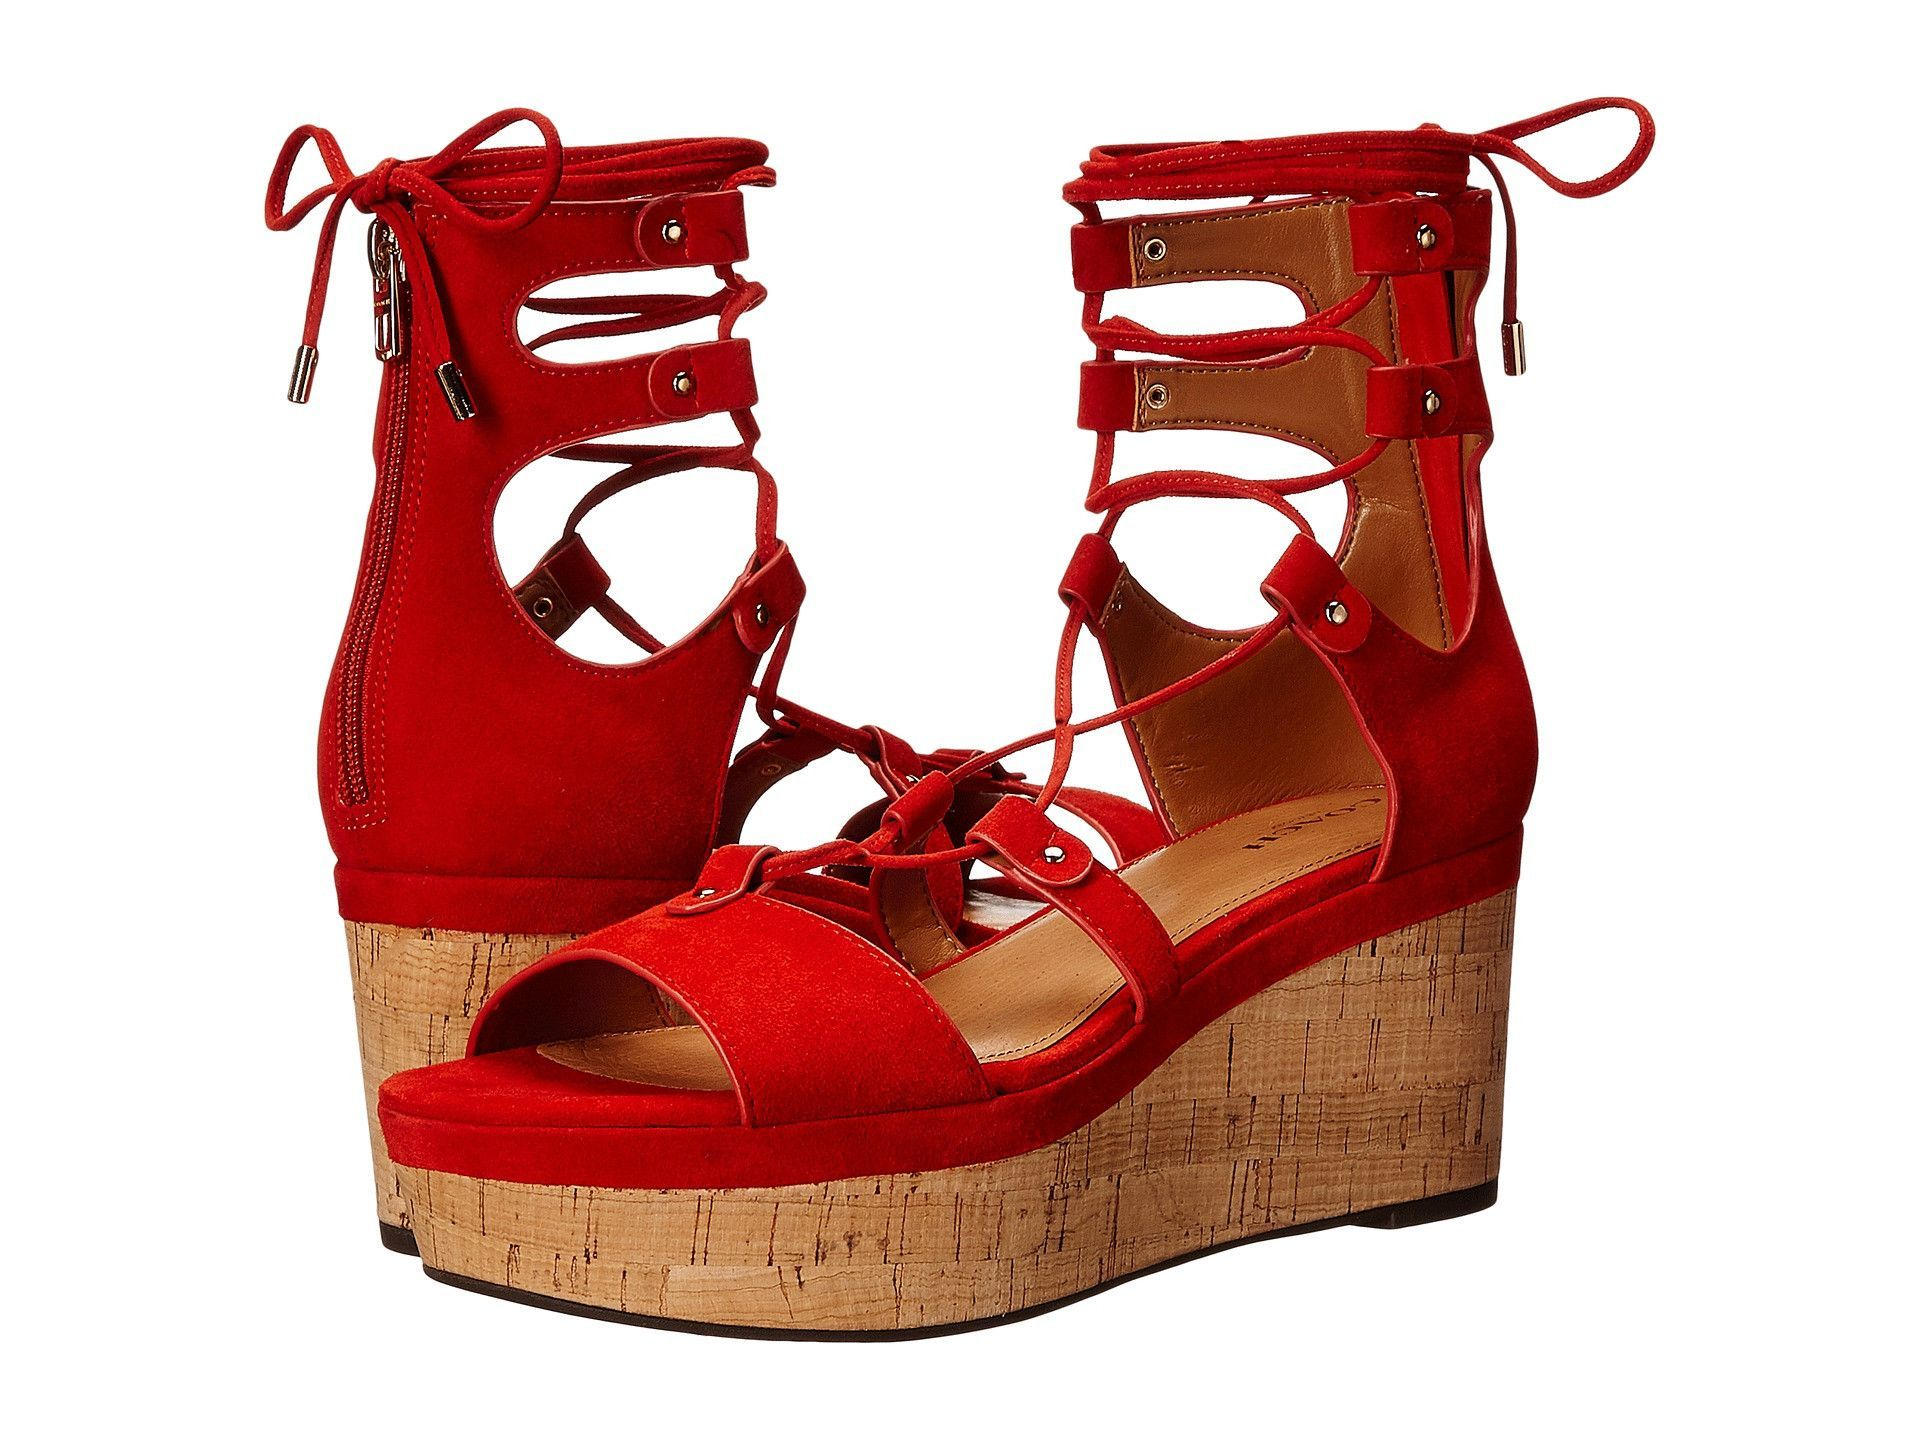 da7f471279f COACH Barkley Platform Sandals 8 Red